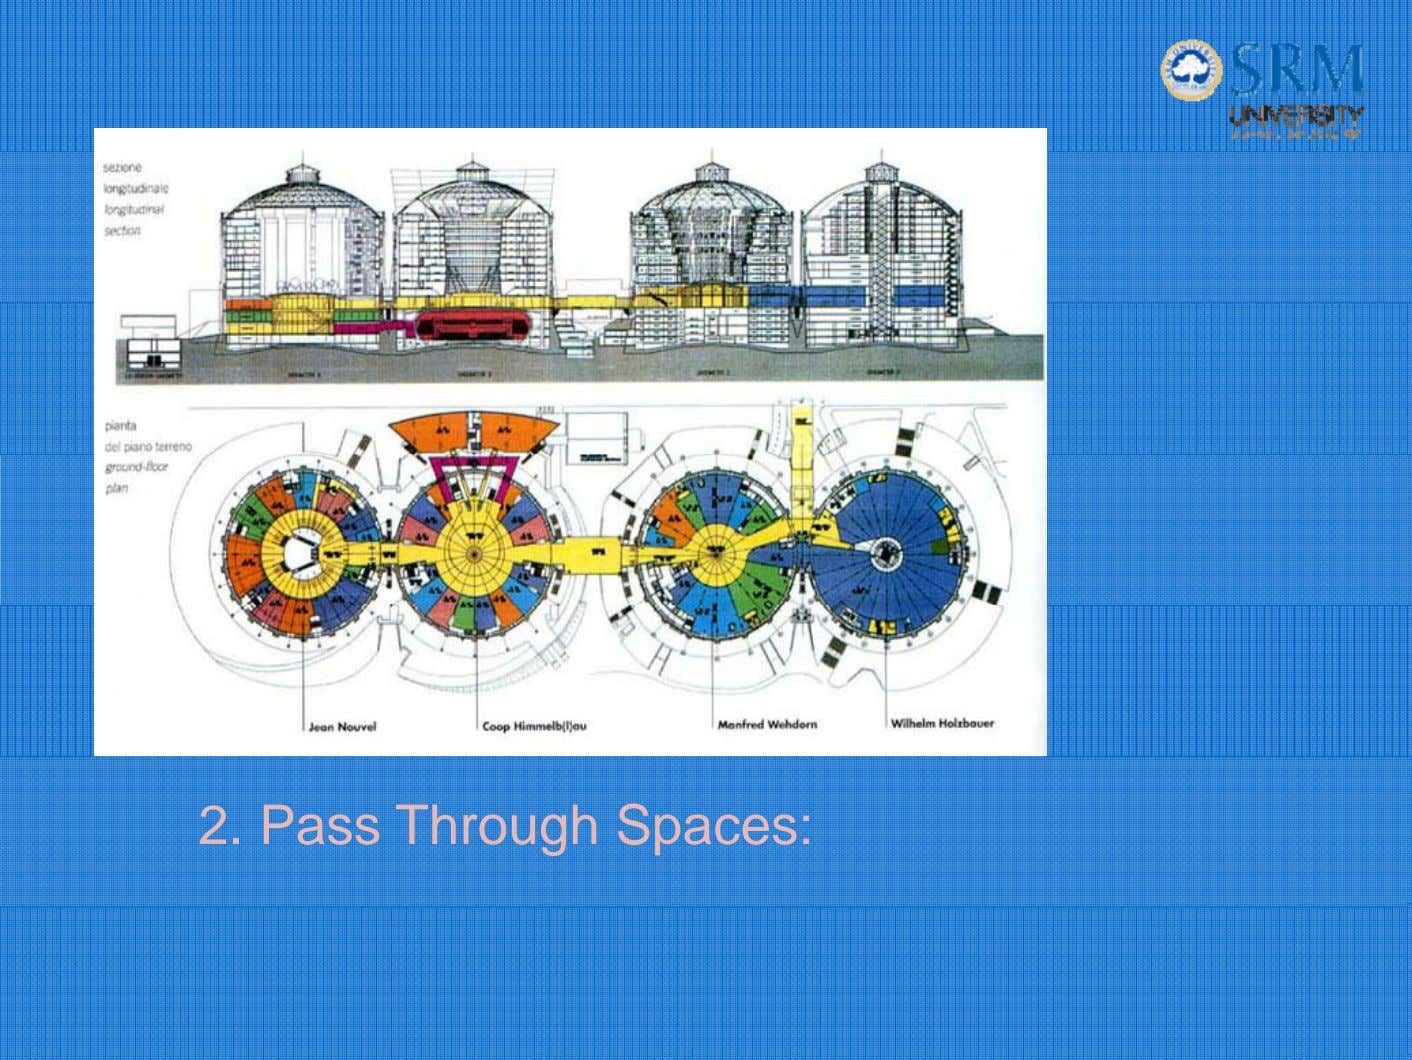 2. Pass Through Spaces: